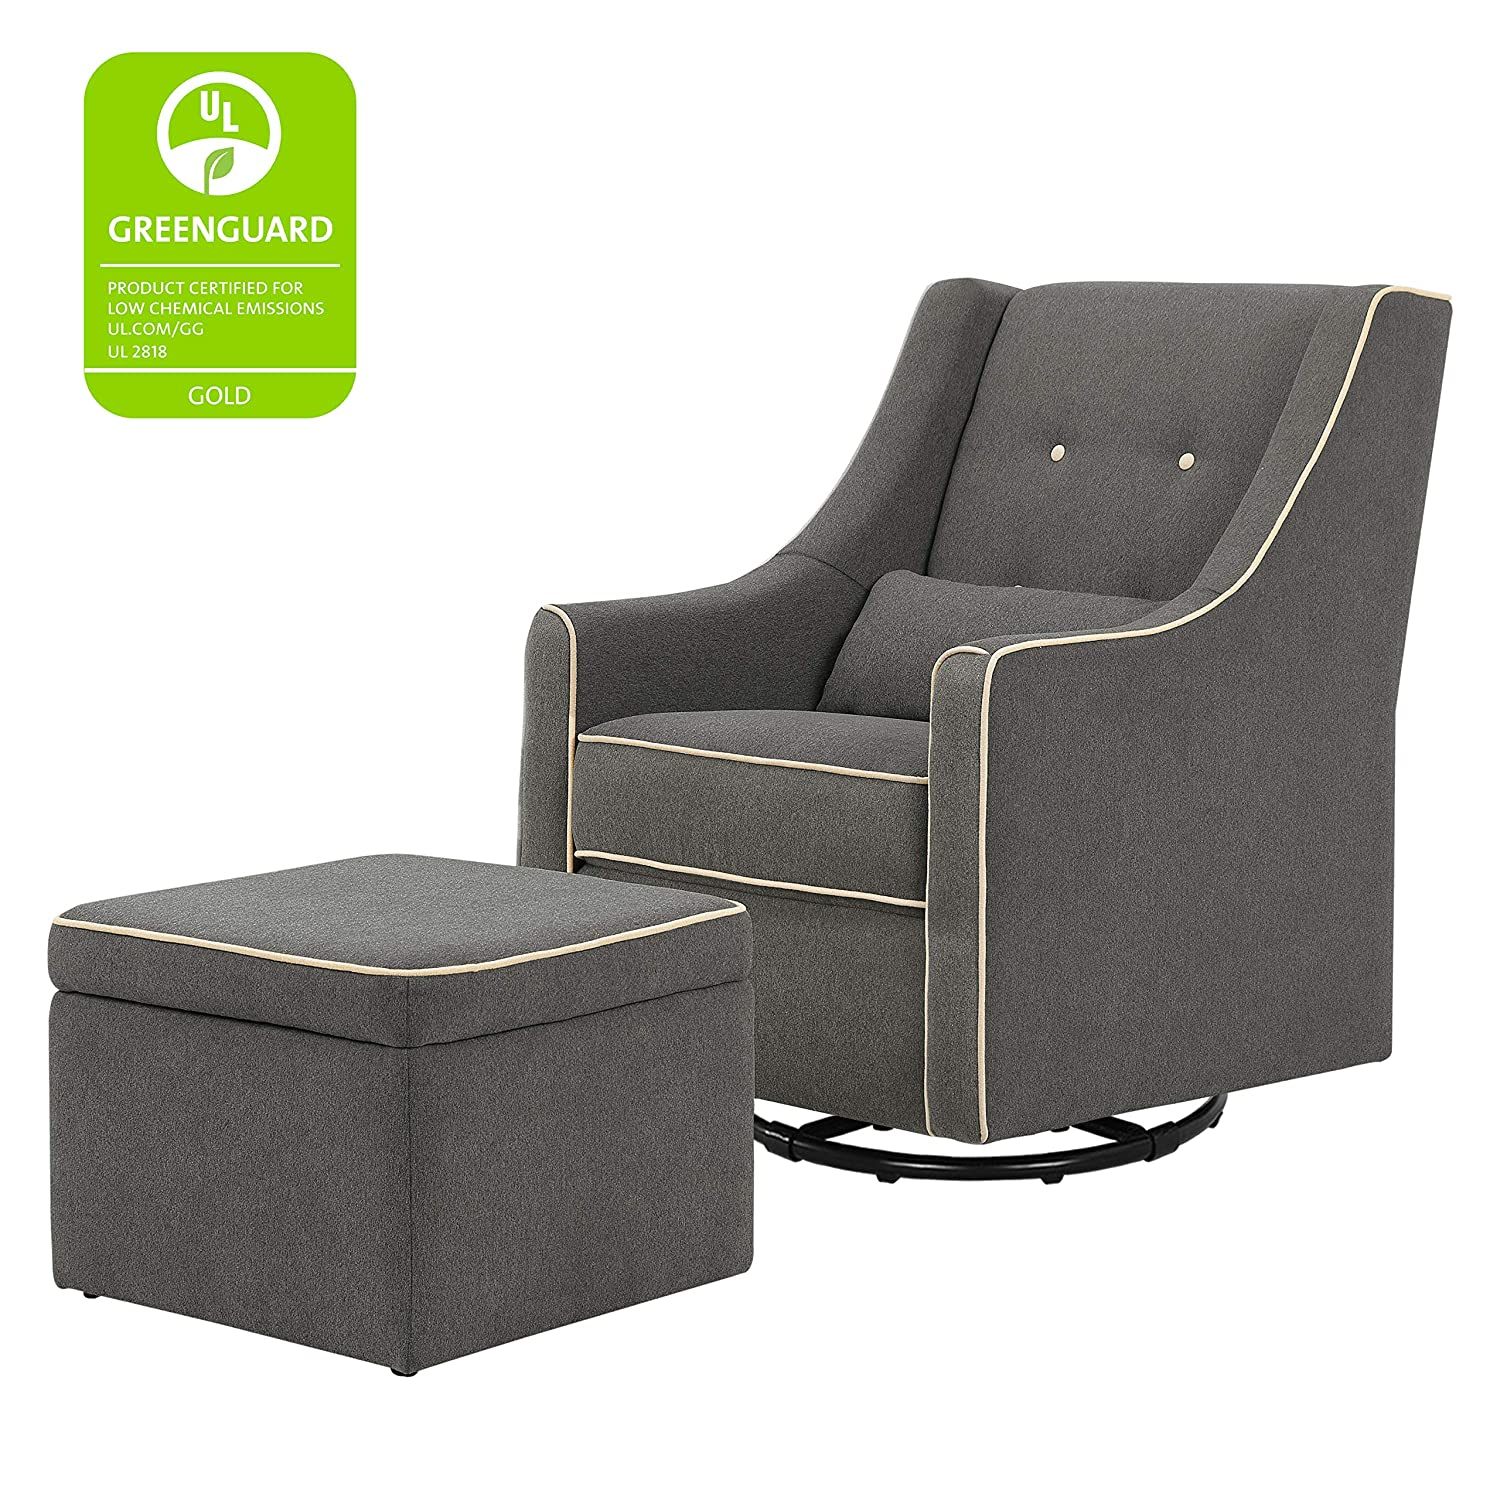 Incredible Davinci Owen Upholstered Swivel Glider With Side Pocket And Storage Ottoman Dark Grey With Cream Piping Pabps2019 Chair Design Images Pabps2019Com